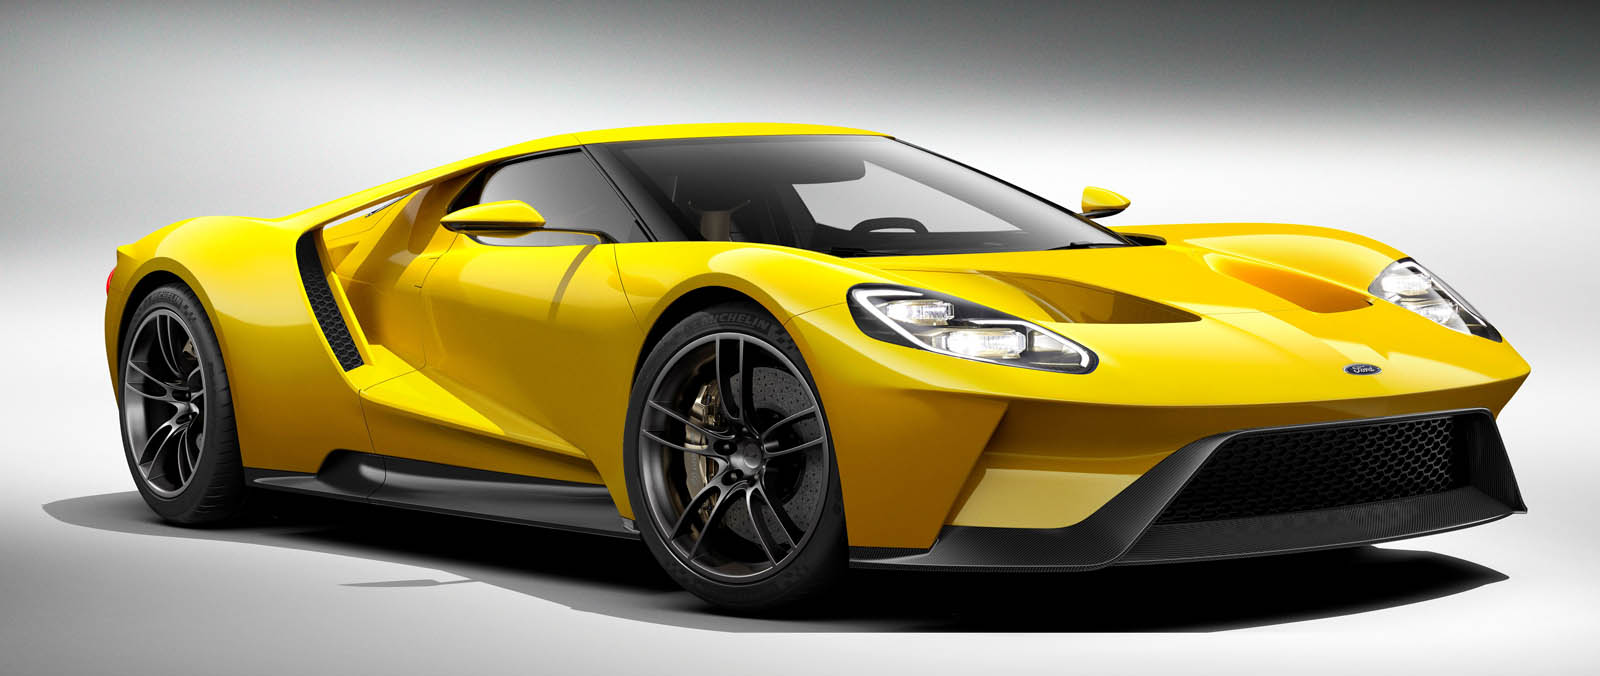 Ford GT maakt Europees debuut in Geneve